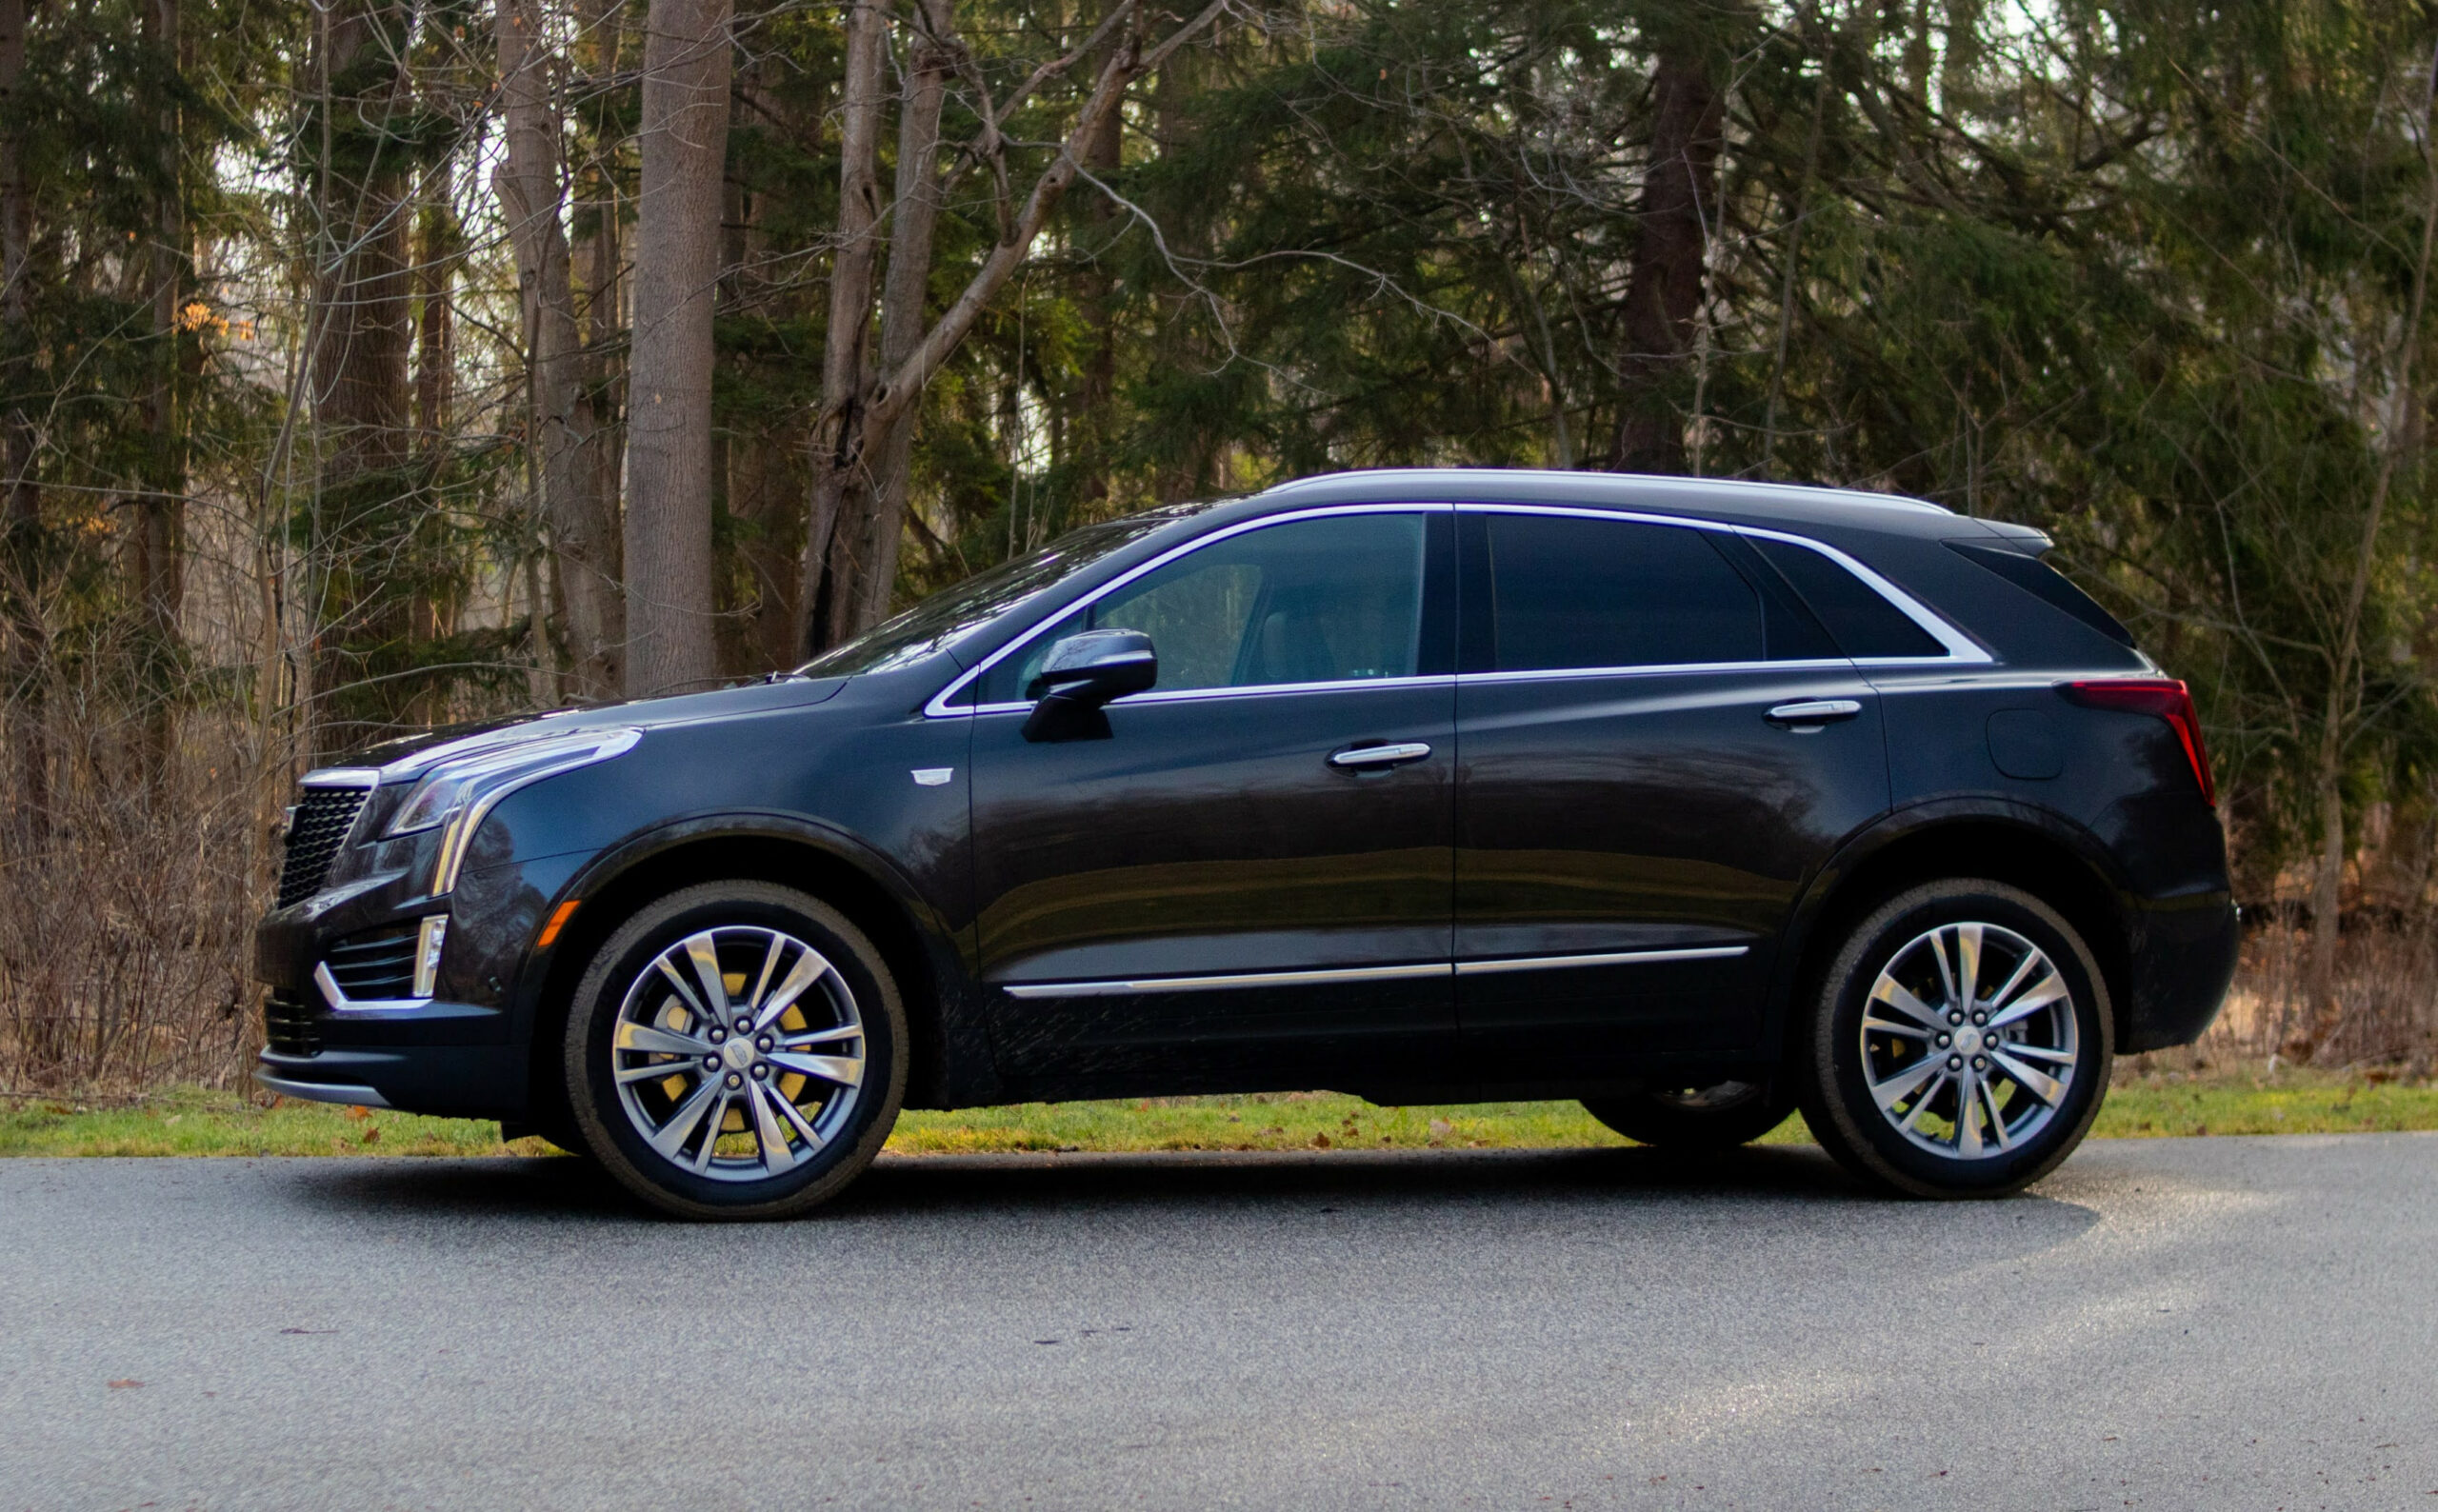 Review: Cadillac XT11 offers comfort but fails to stand out among SUVs - cadillac xt5 review 2020